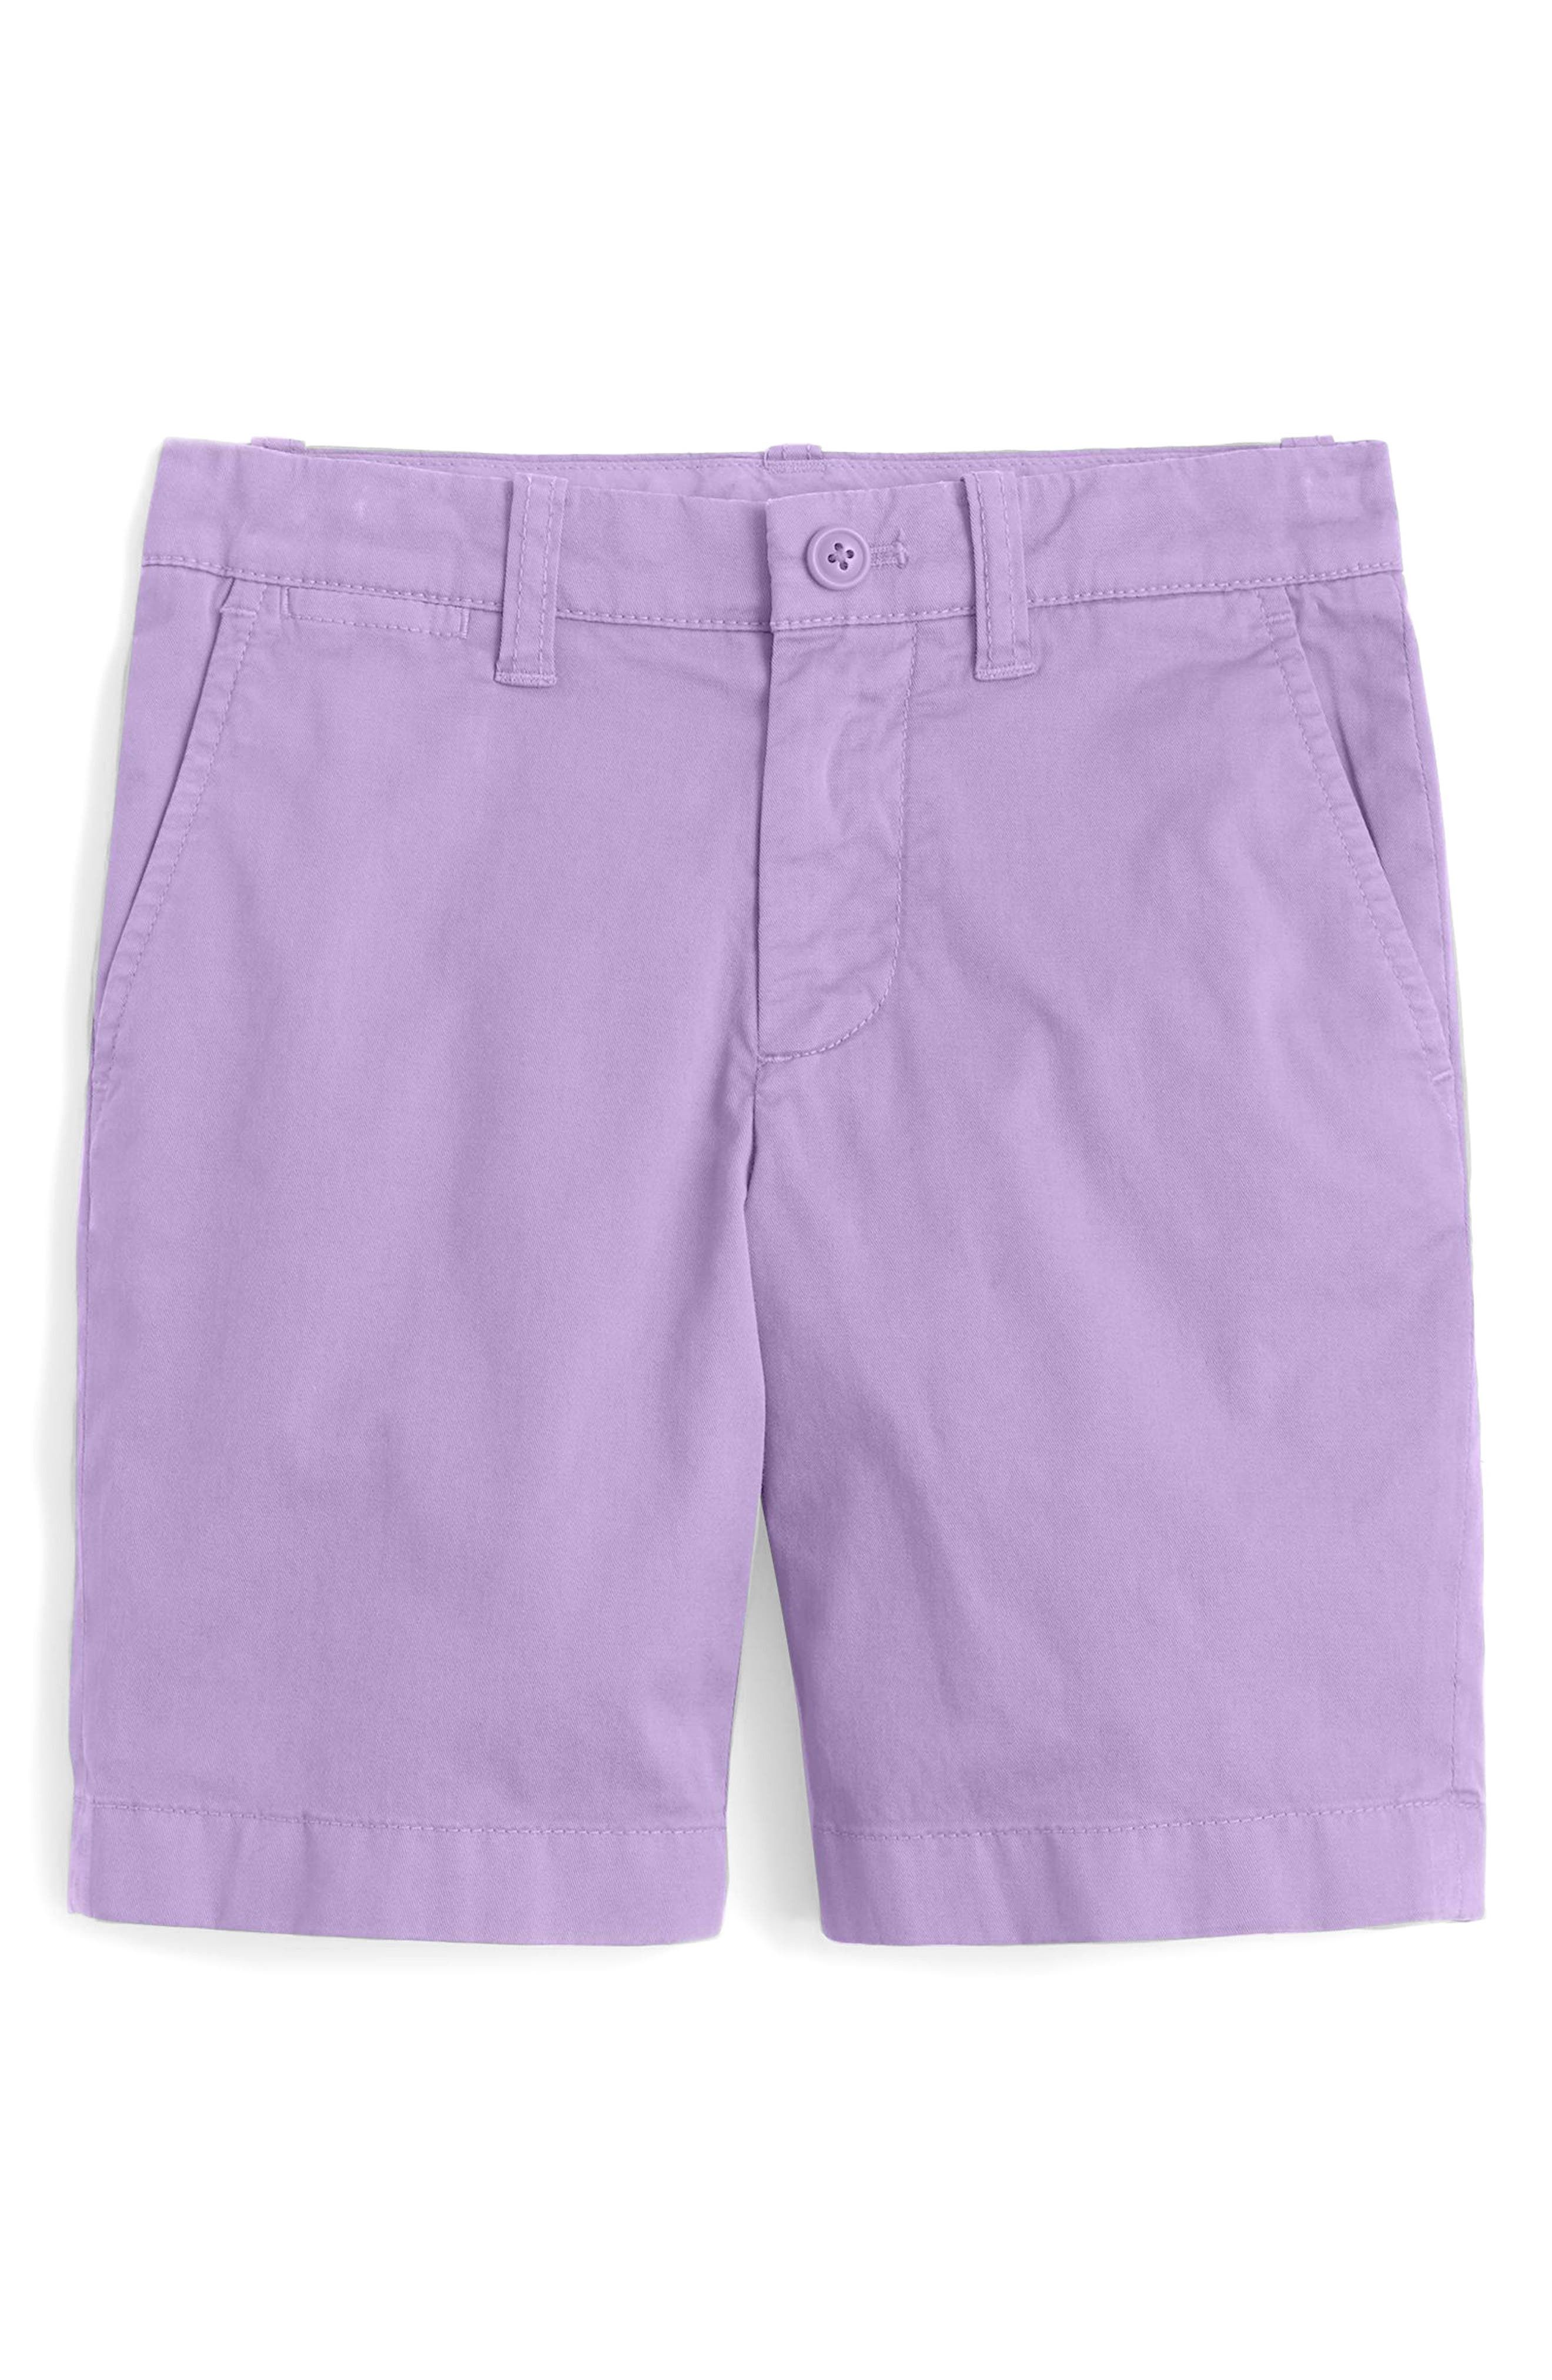 Stanton Chino Shorts,                             Main thumbnail 1, color,                             Iced Lavender